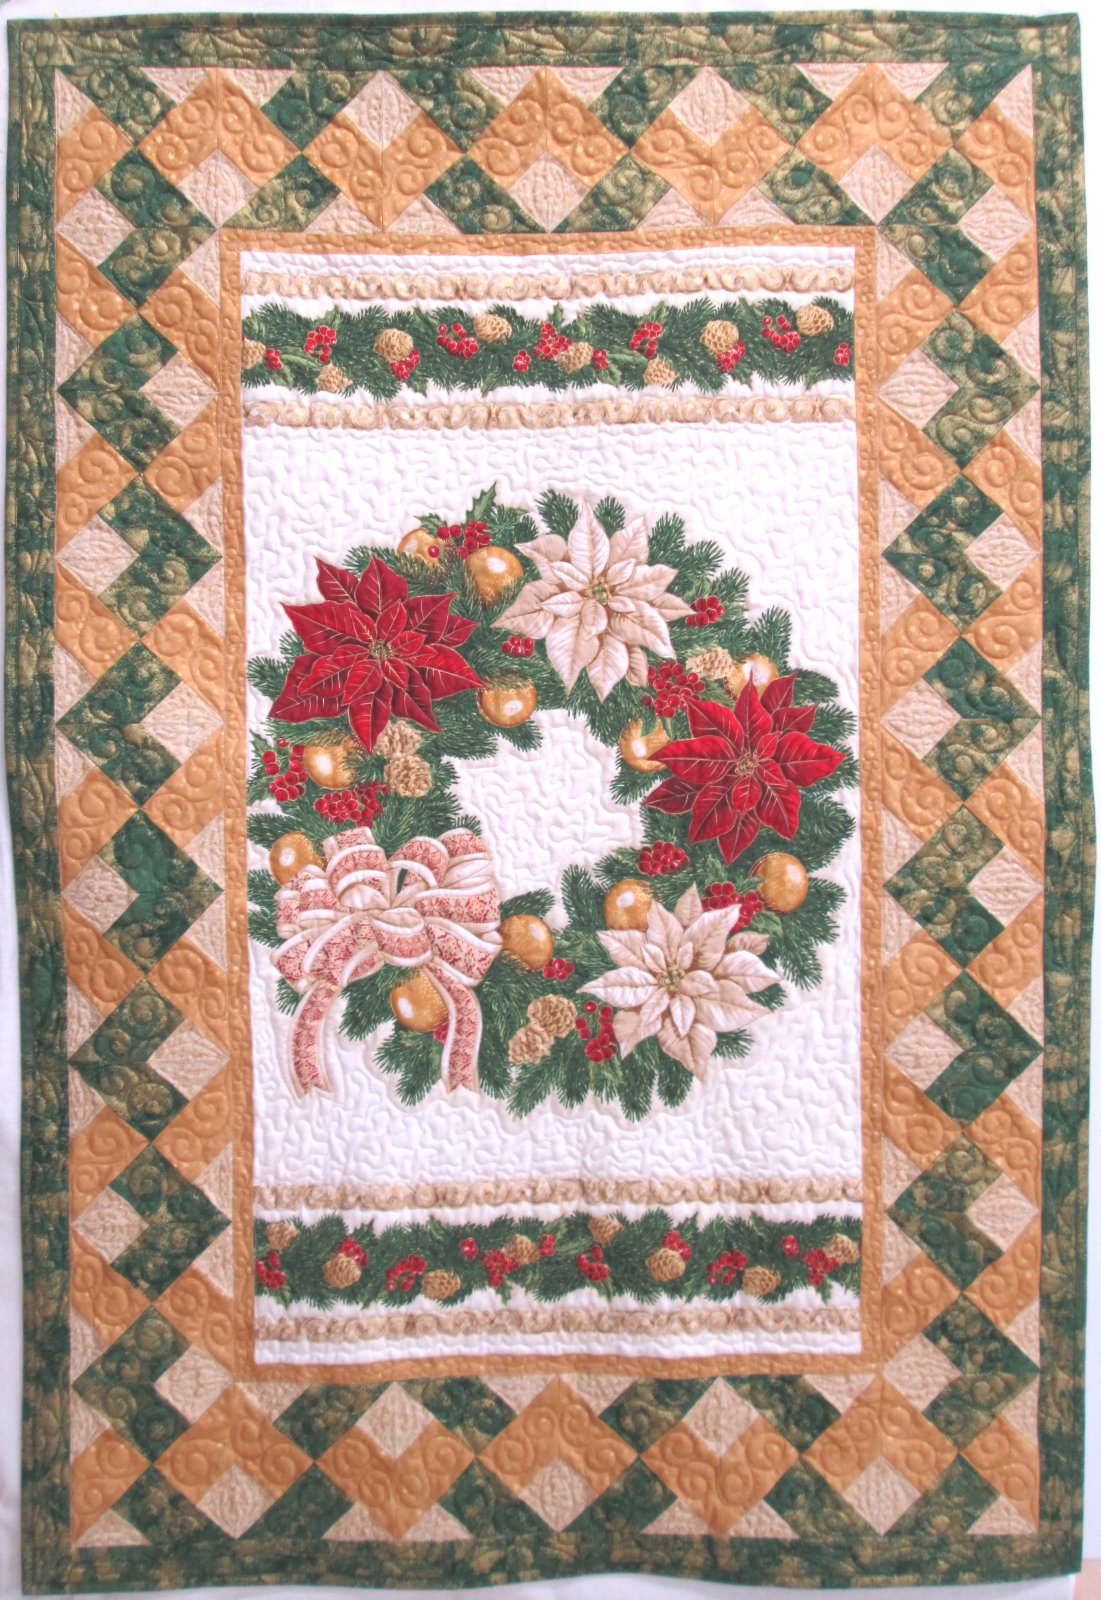 Holiday Flourish Christmas Elegance Wreath Wall Hanging or quilt Sample